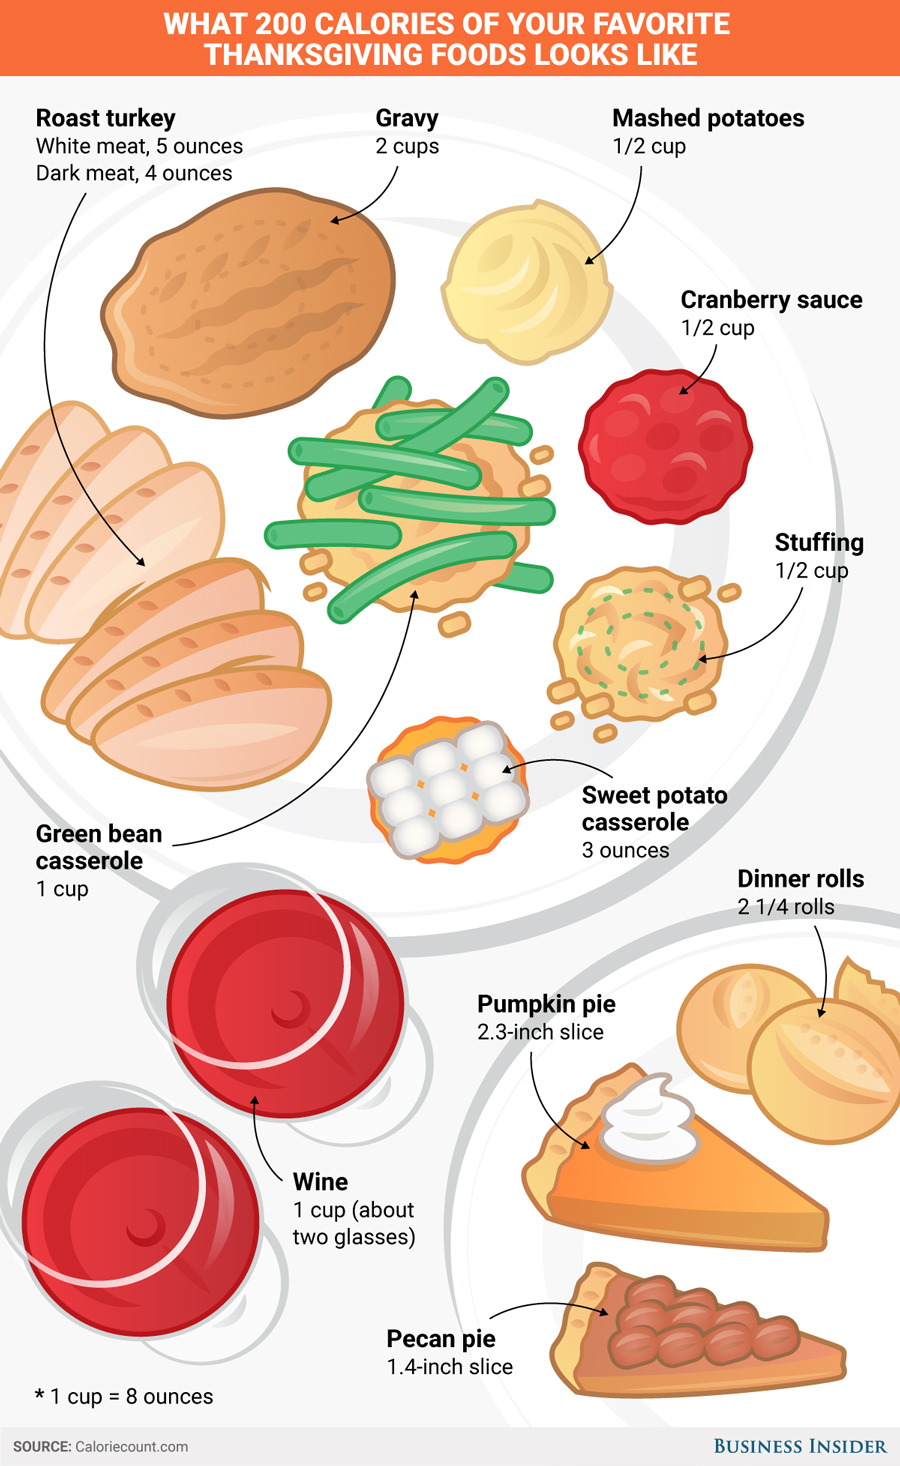 bi-thanksgiving-foods-200-cals